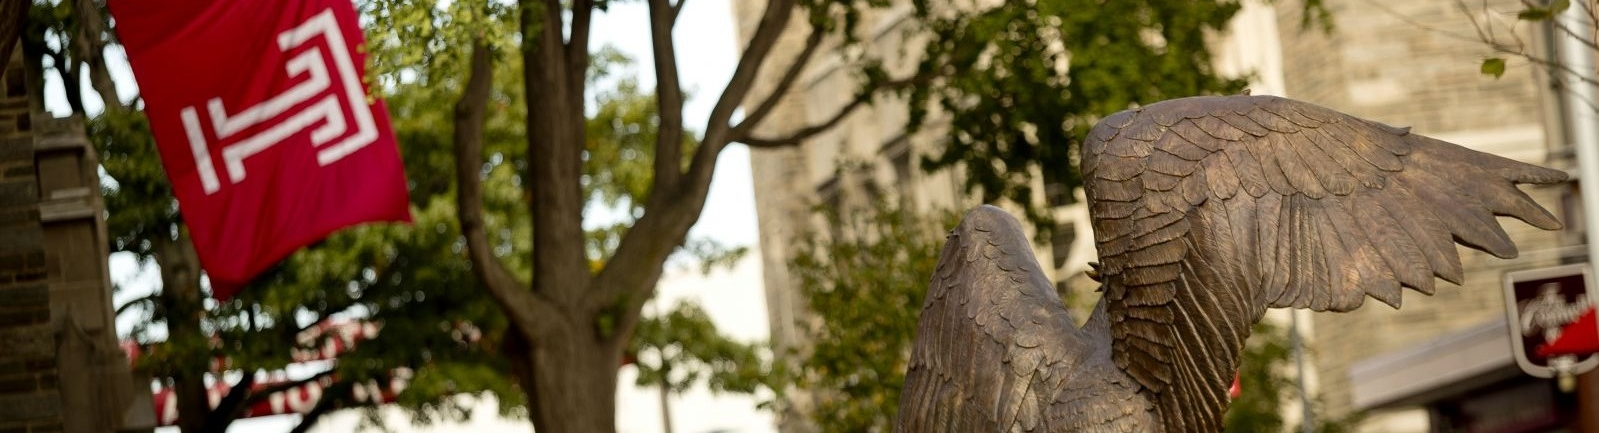 A Temple University flag flies just beyond a statue in Lenfest Circle.